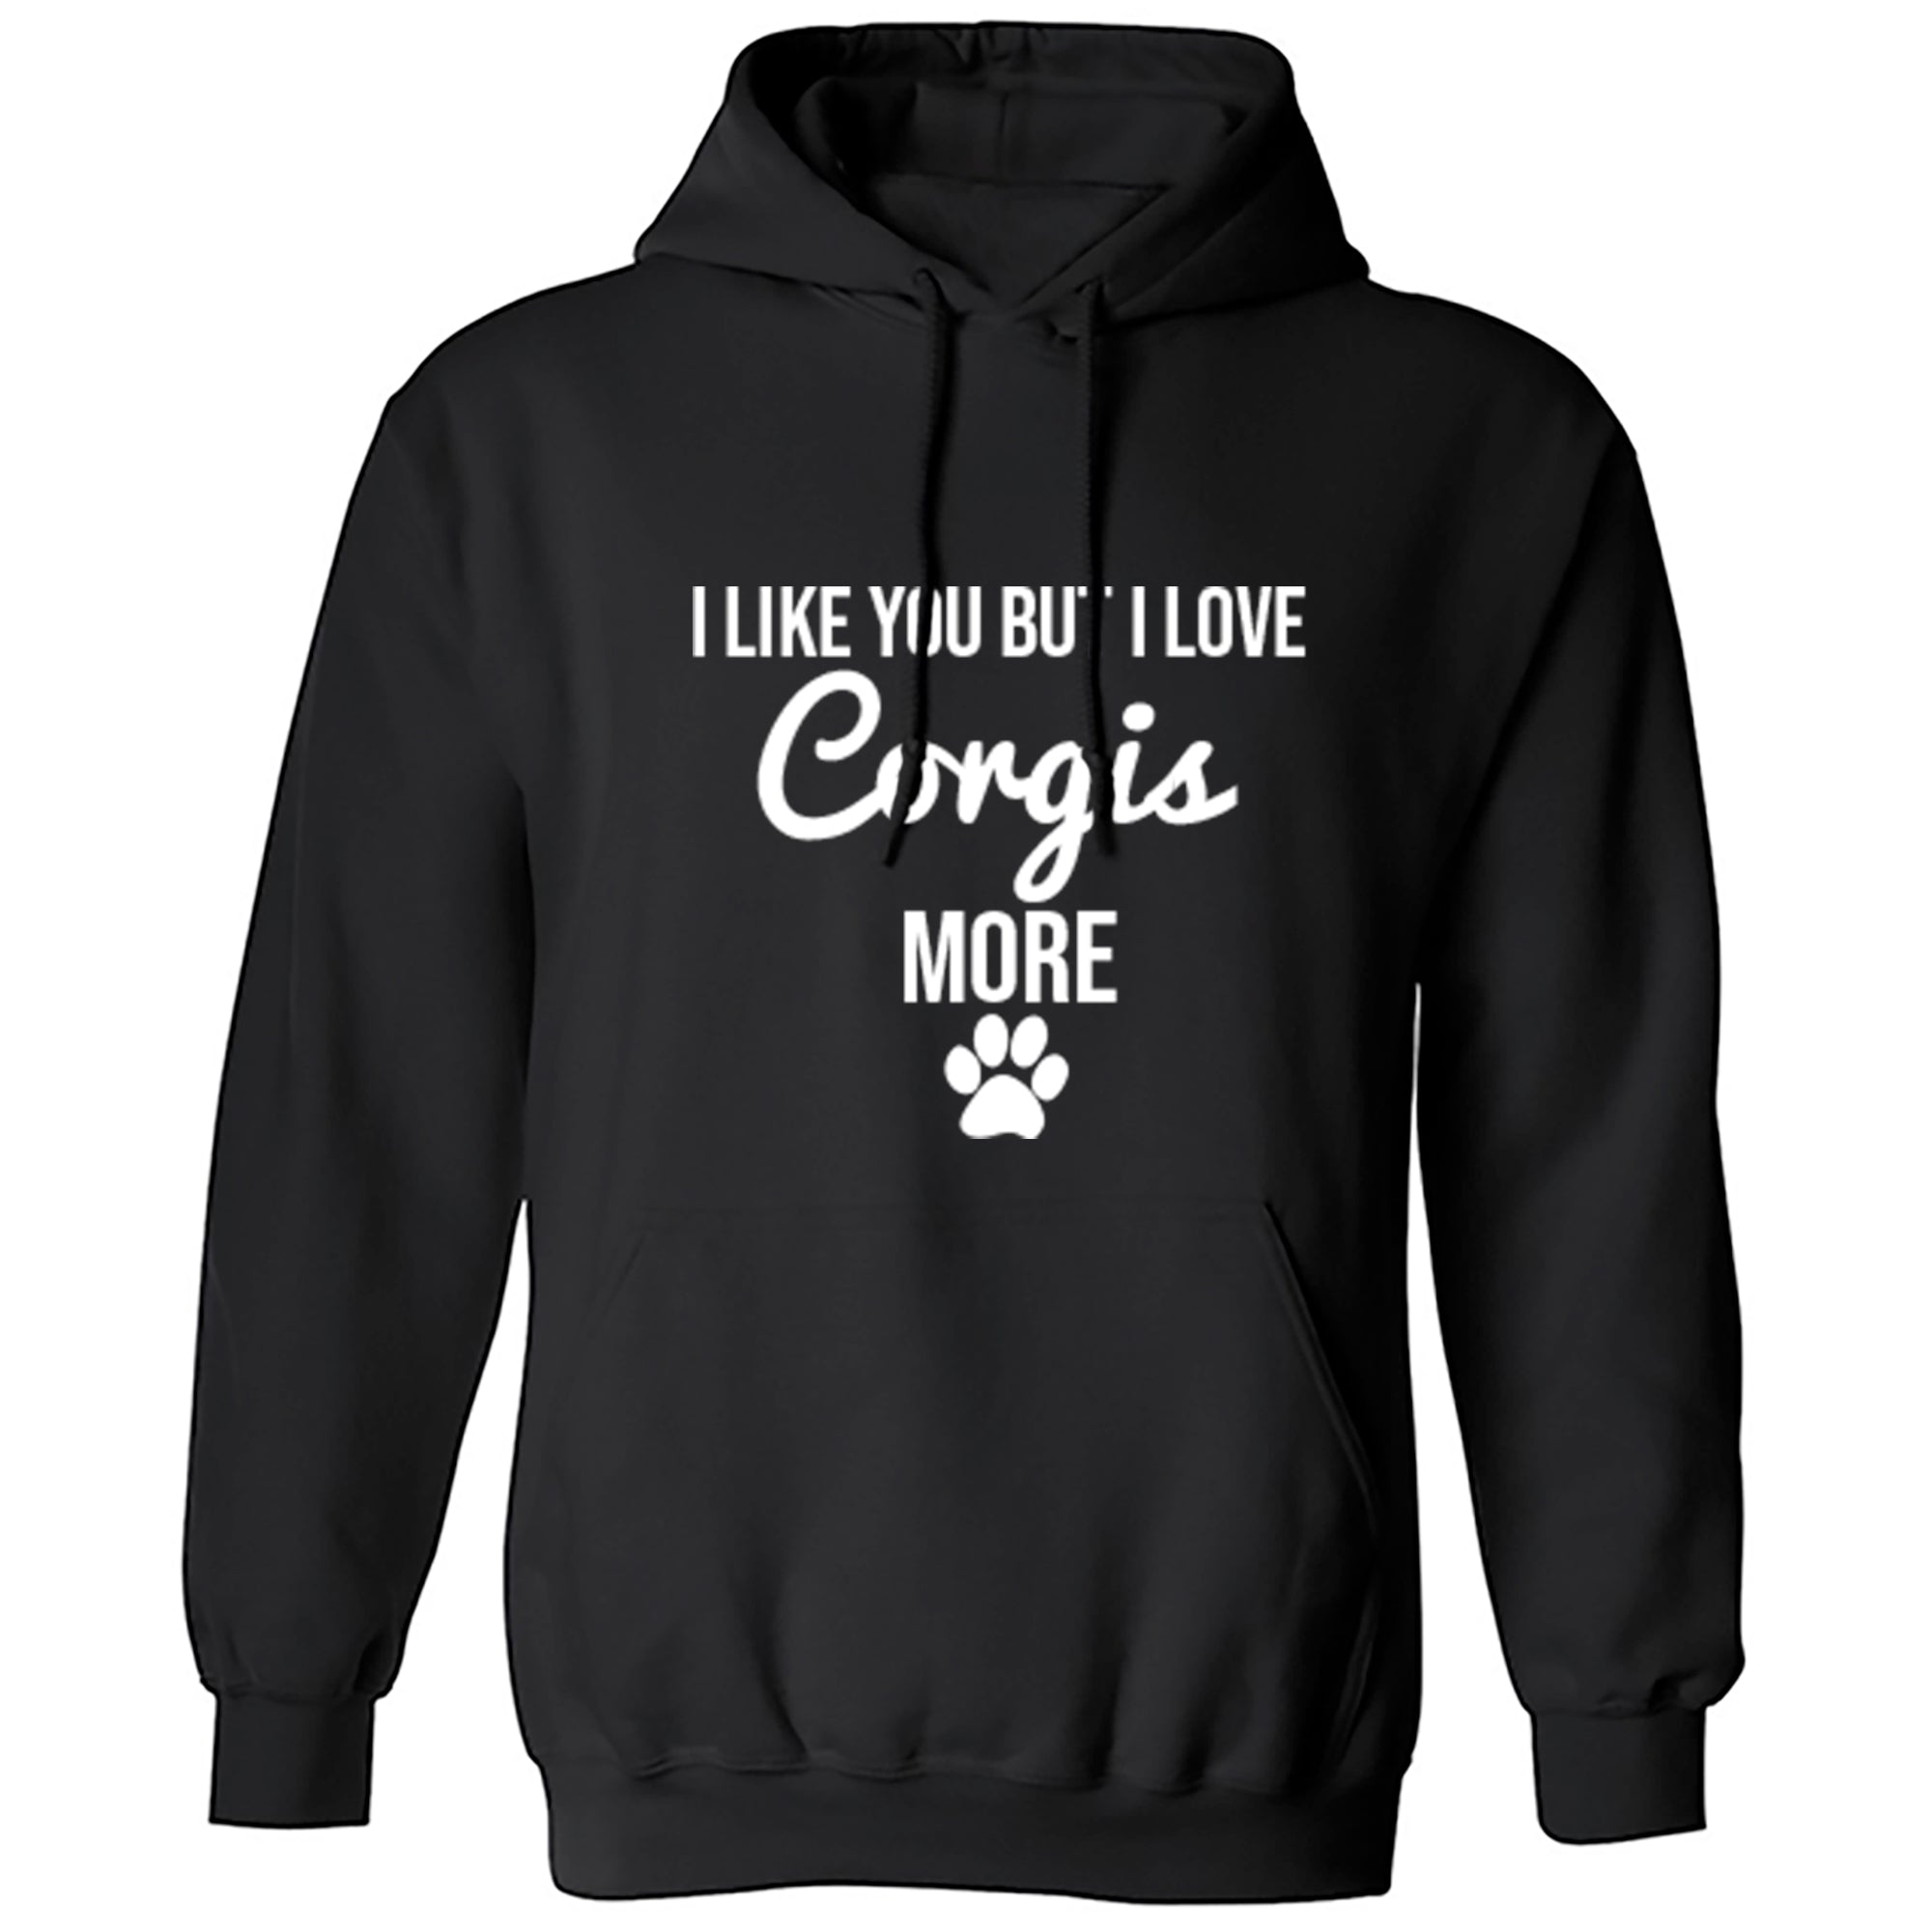 I Like You But I Love Corgis More Unisex Hoodie S0112 - Illustrated Identity Ltd.